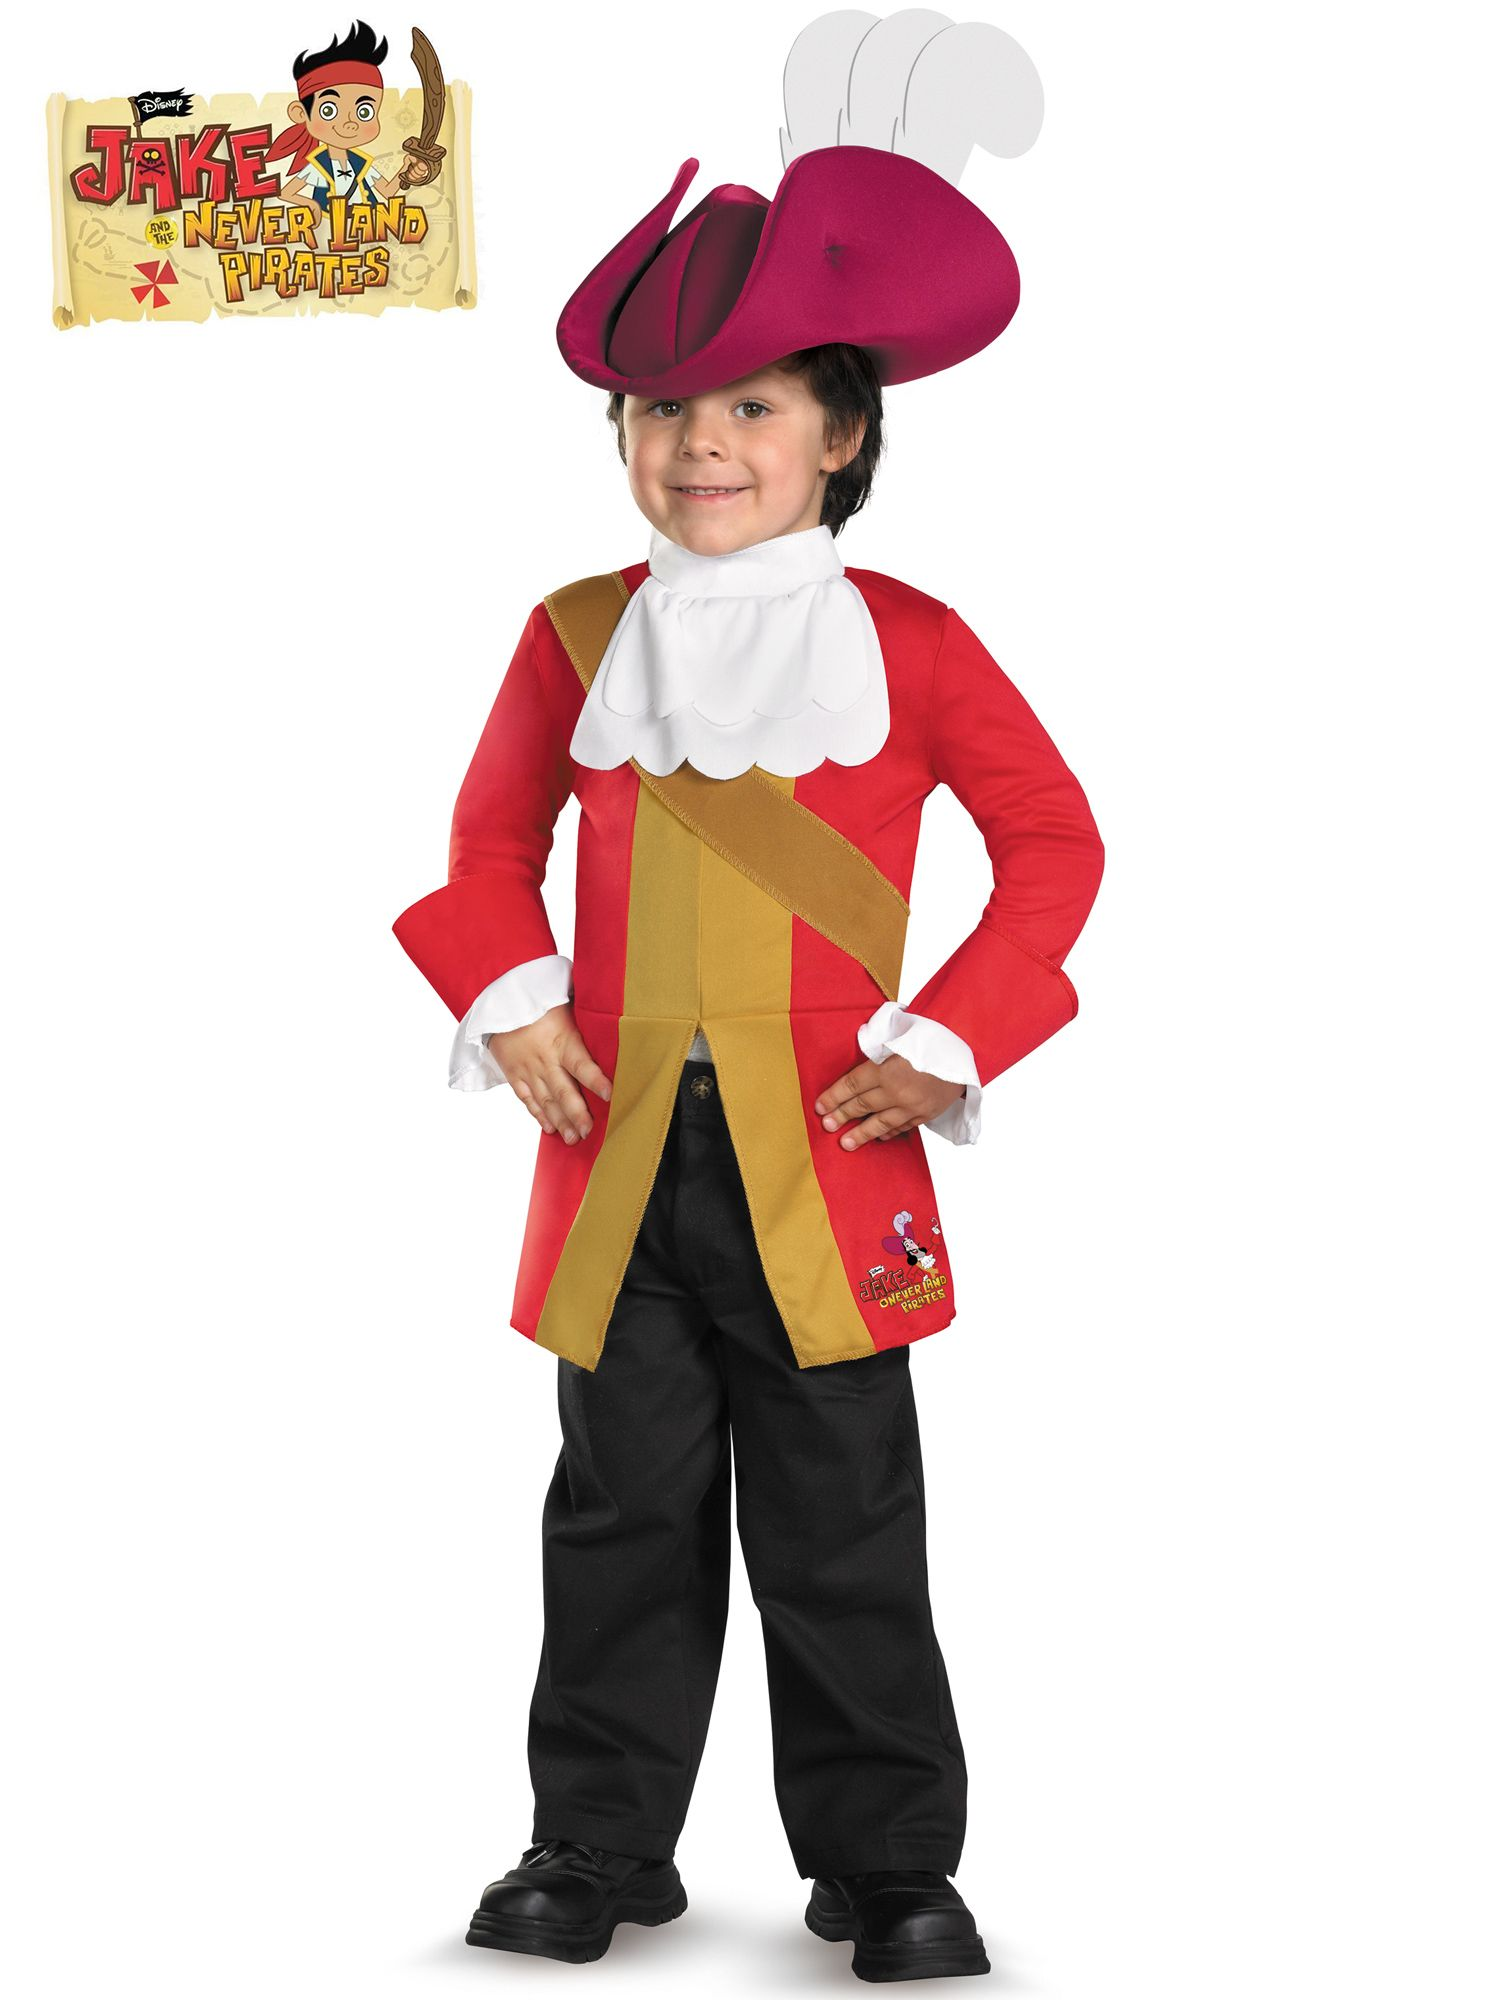 Captain Hook from Jake and the Neverland Pirates Costume by Disguise